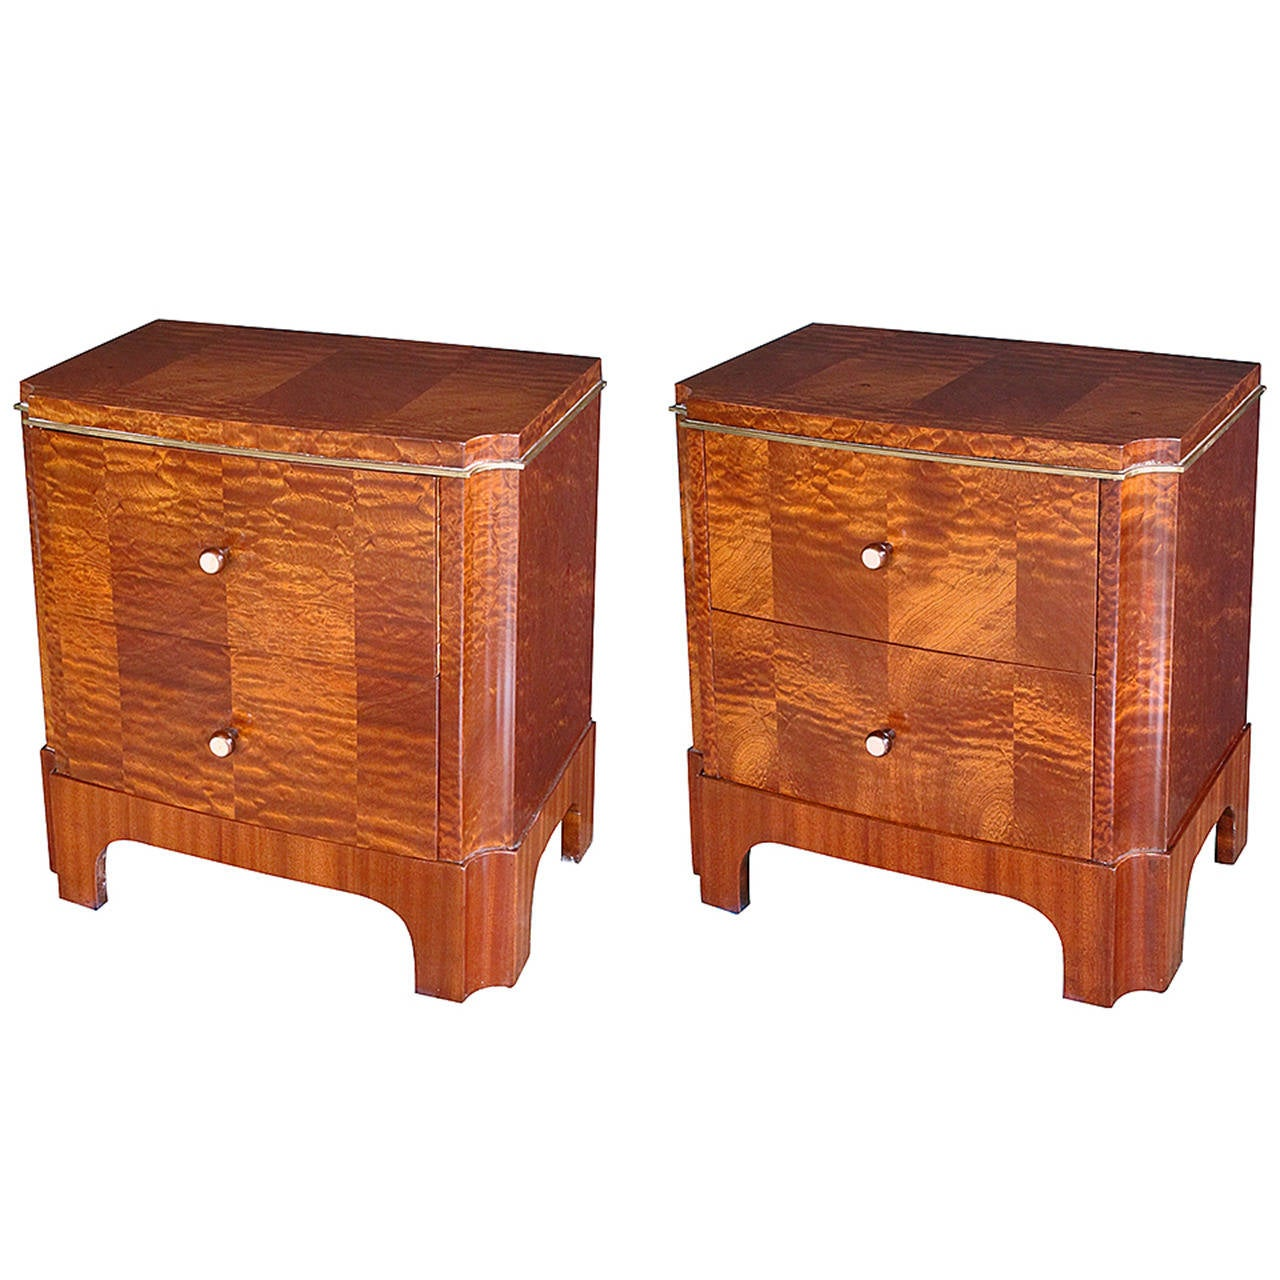 good pair of french art deco mahogany two drawer commodes for sale at 1stdibs. Black Bedroom Furniture Sets. Home Design Ideas